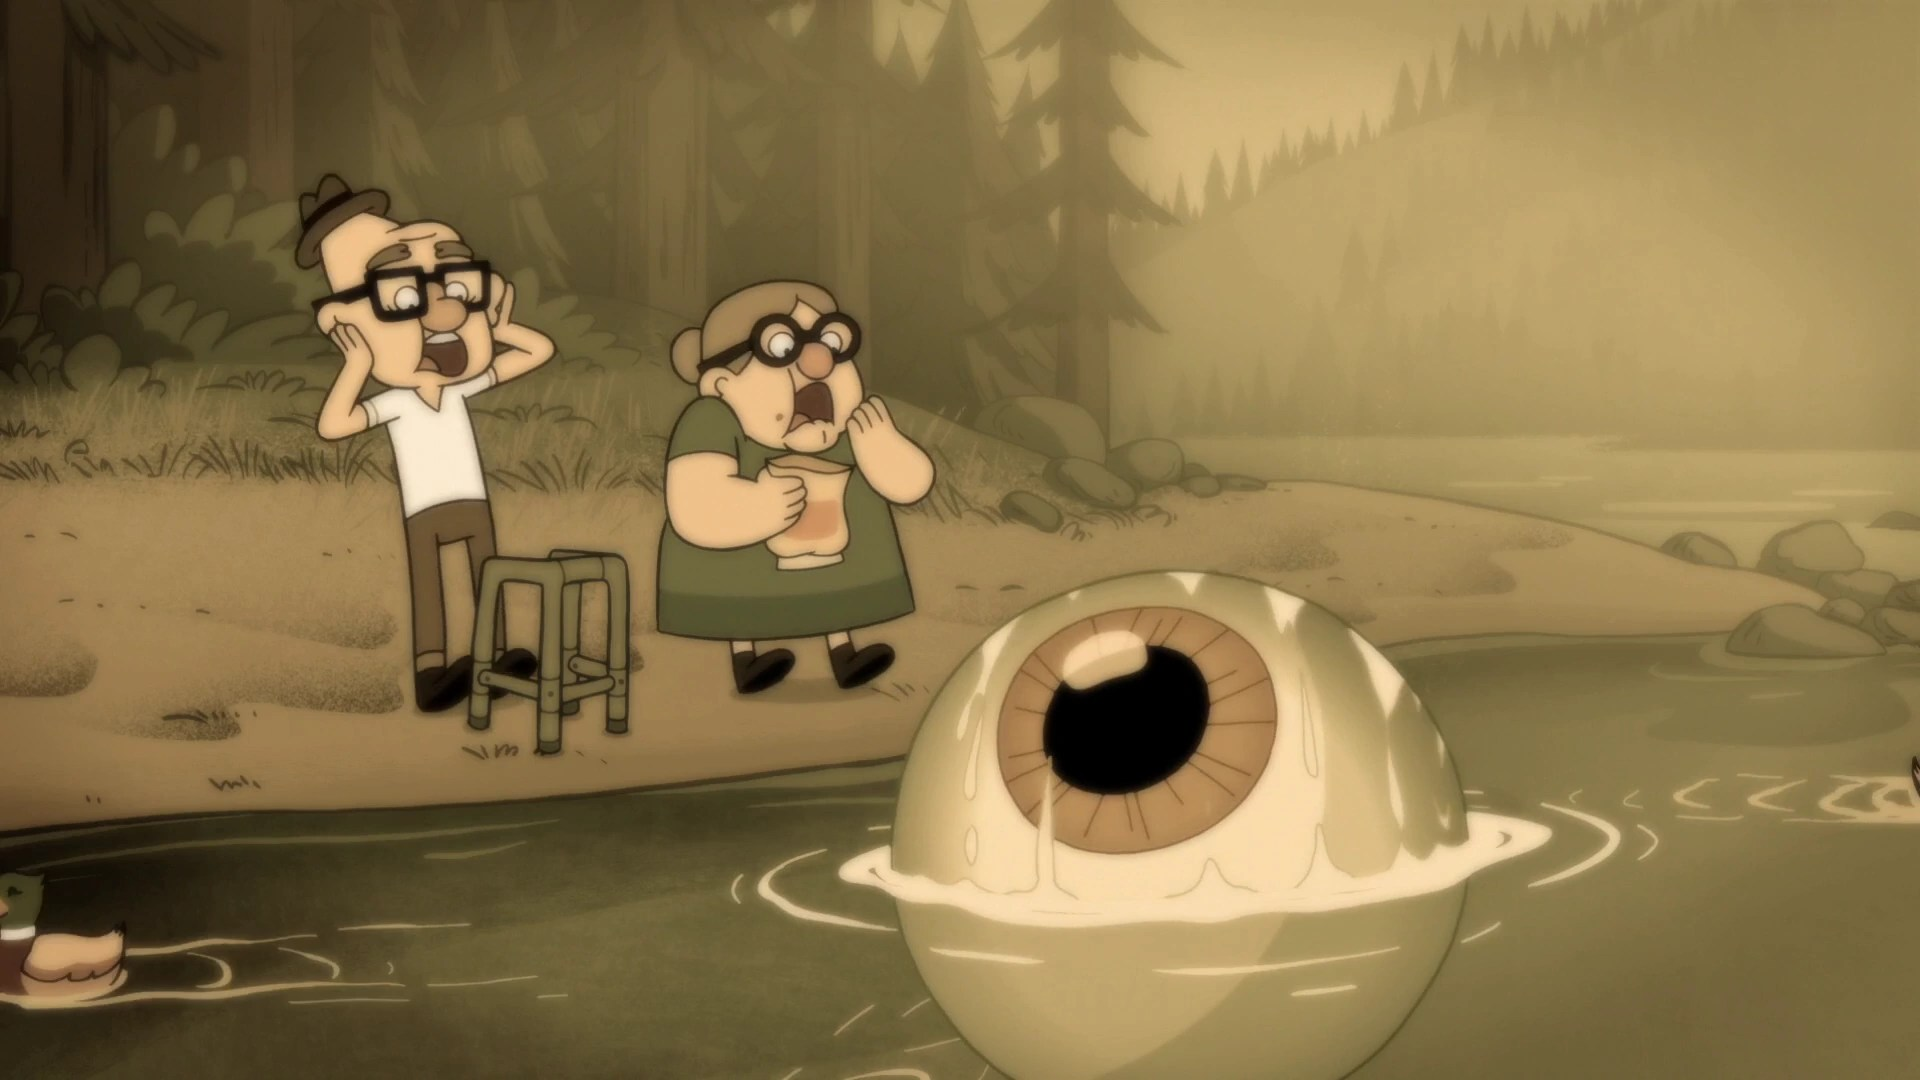 Gravity Falls Bill Cipher Wallpaper Hd Giant Eyeball Gravity Falls Wiki Fandom Powered By Wikia